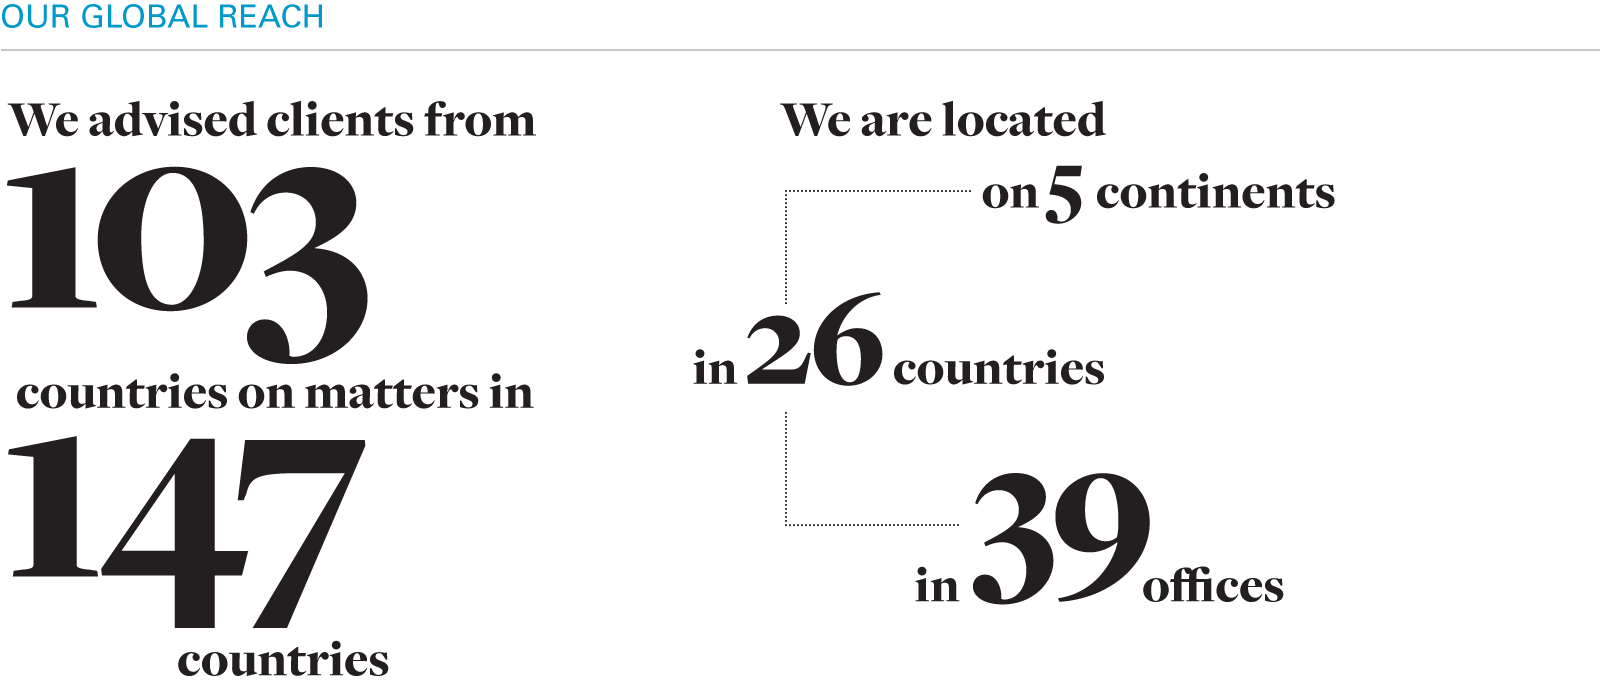 We advised clients from 103 countries on matters in 147 countries